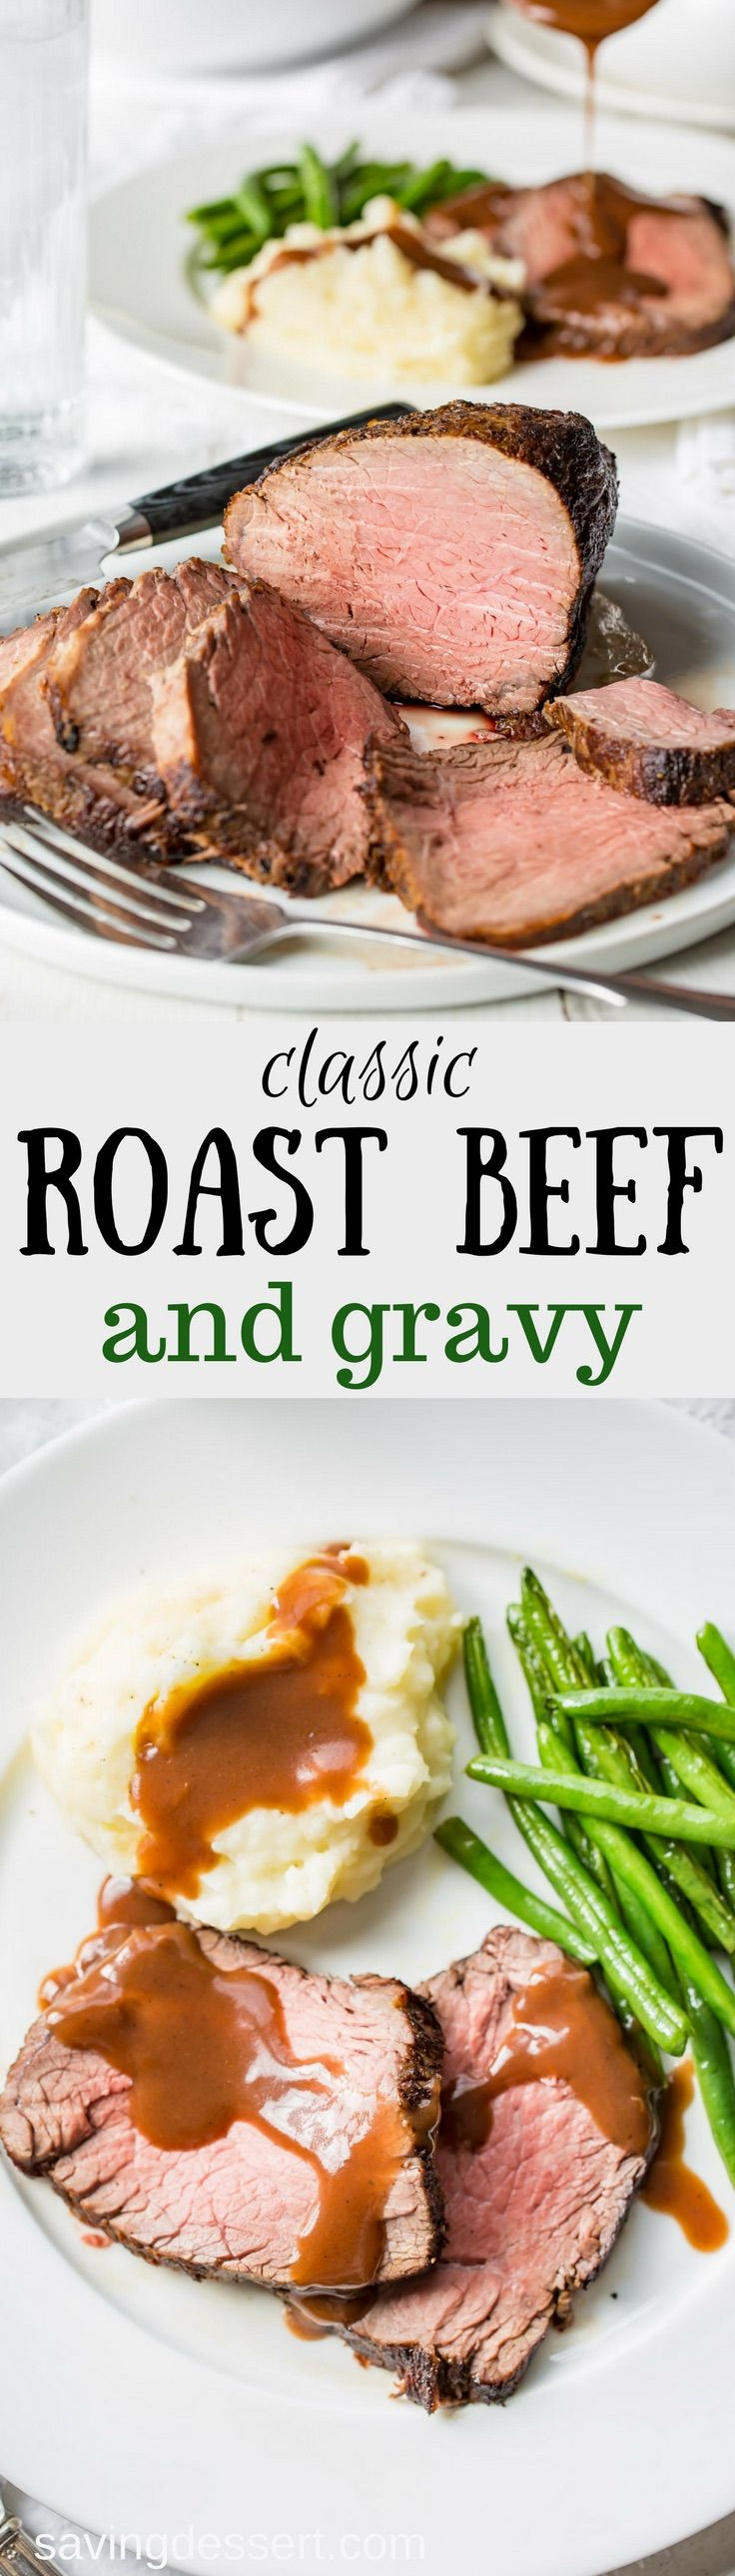 Classic Roast Beef and Gravy - well seasoned and slow cooked, this sirloin roast comes to the table tender and juicy and served with a rich red wine gravy. www.savingdessert.com